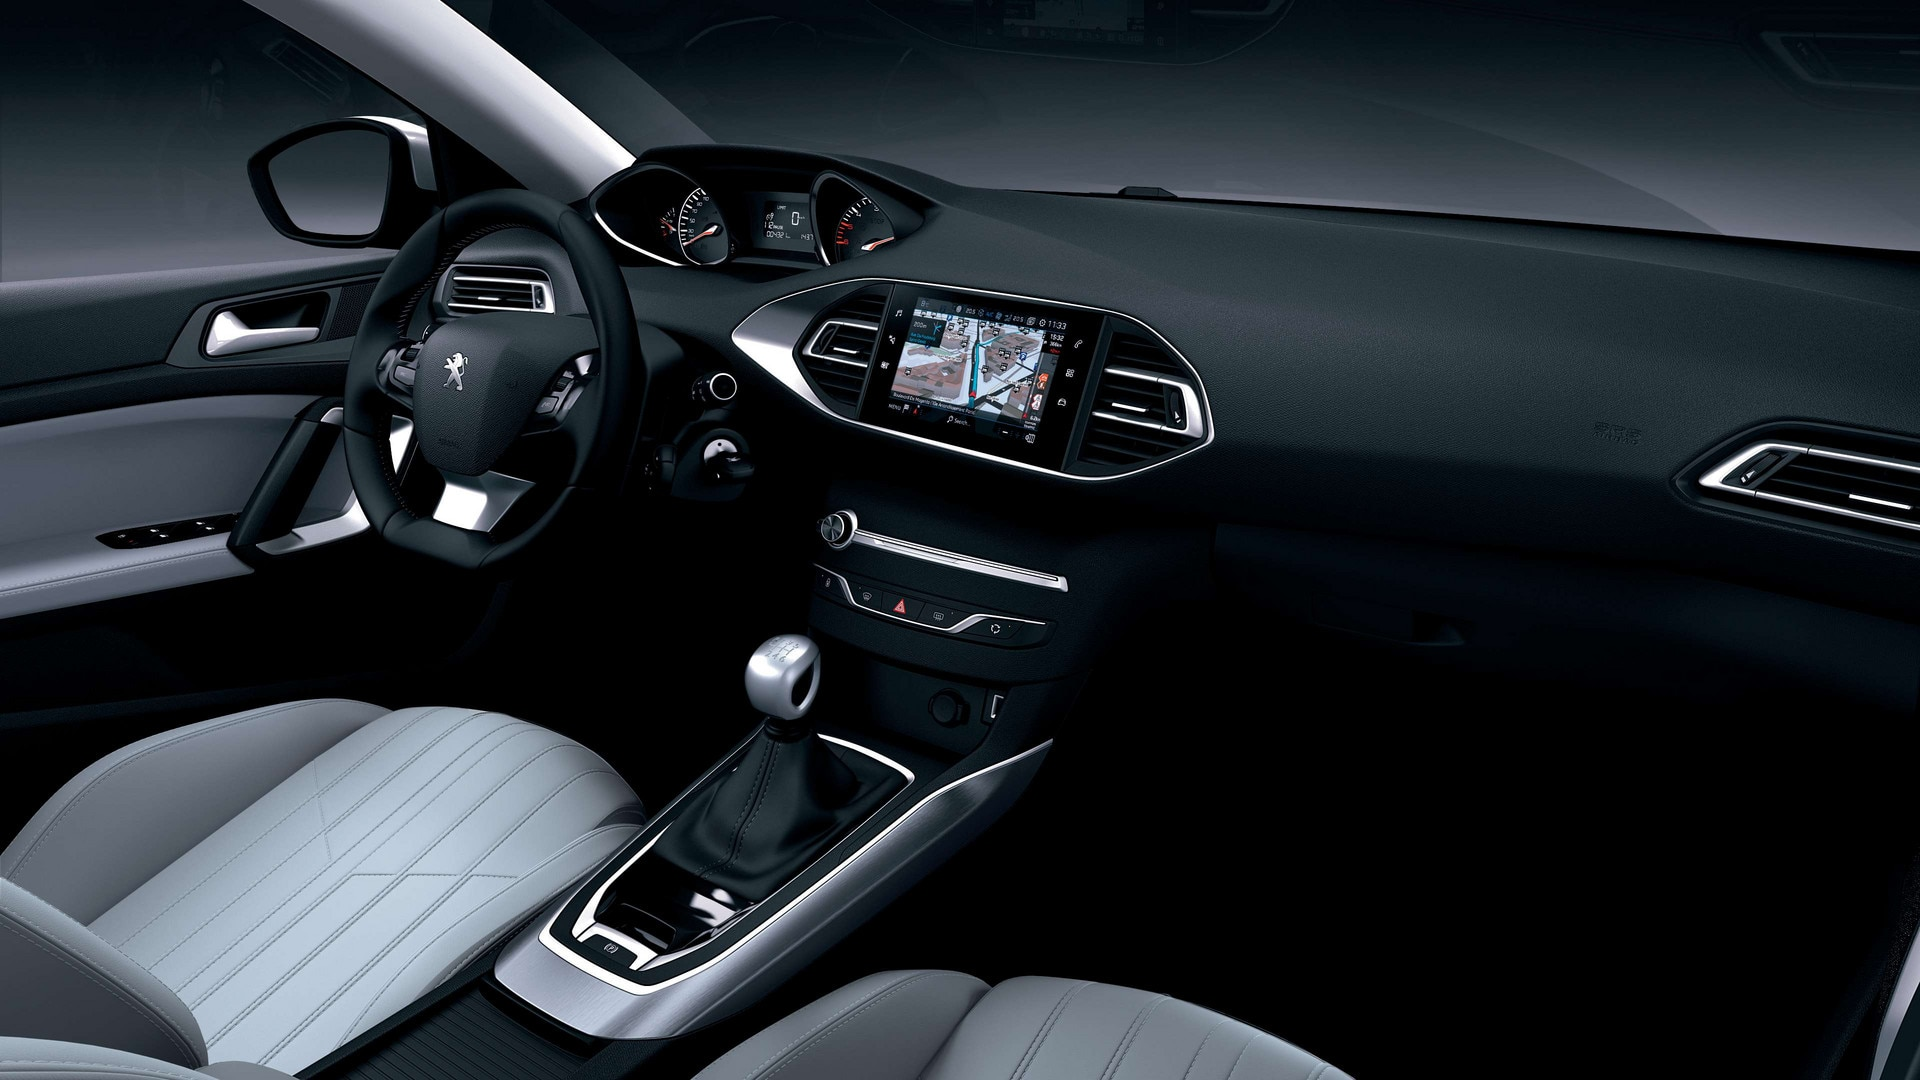 New PEUGEOT 308 | Discover the hatchback by Peugeot